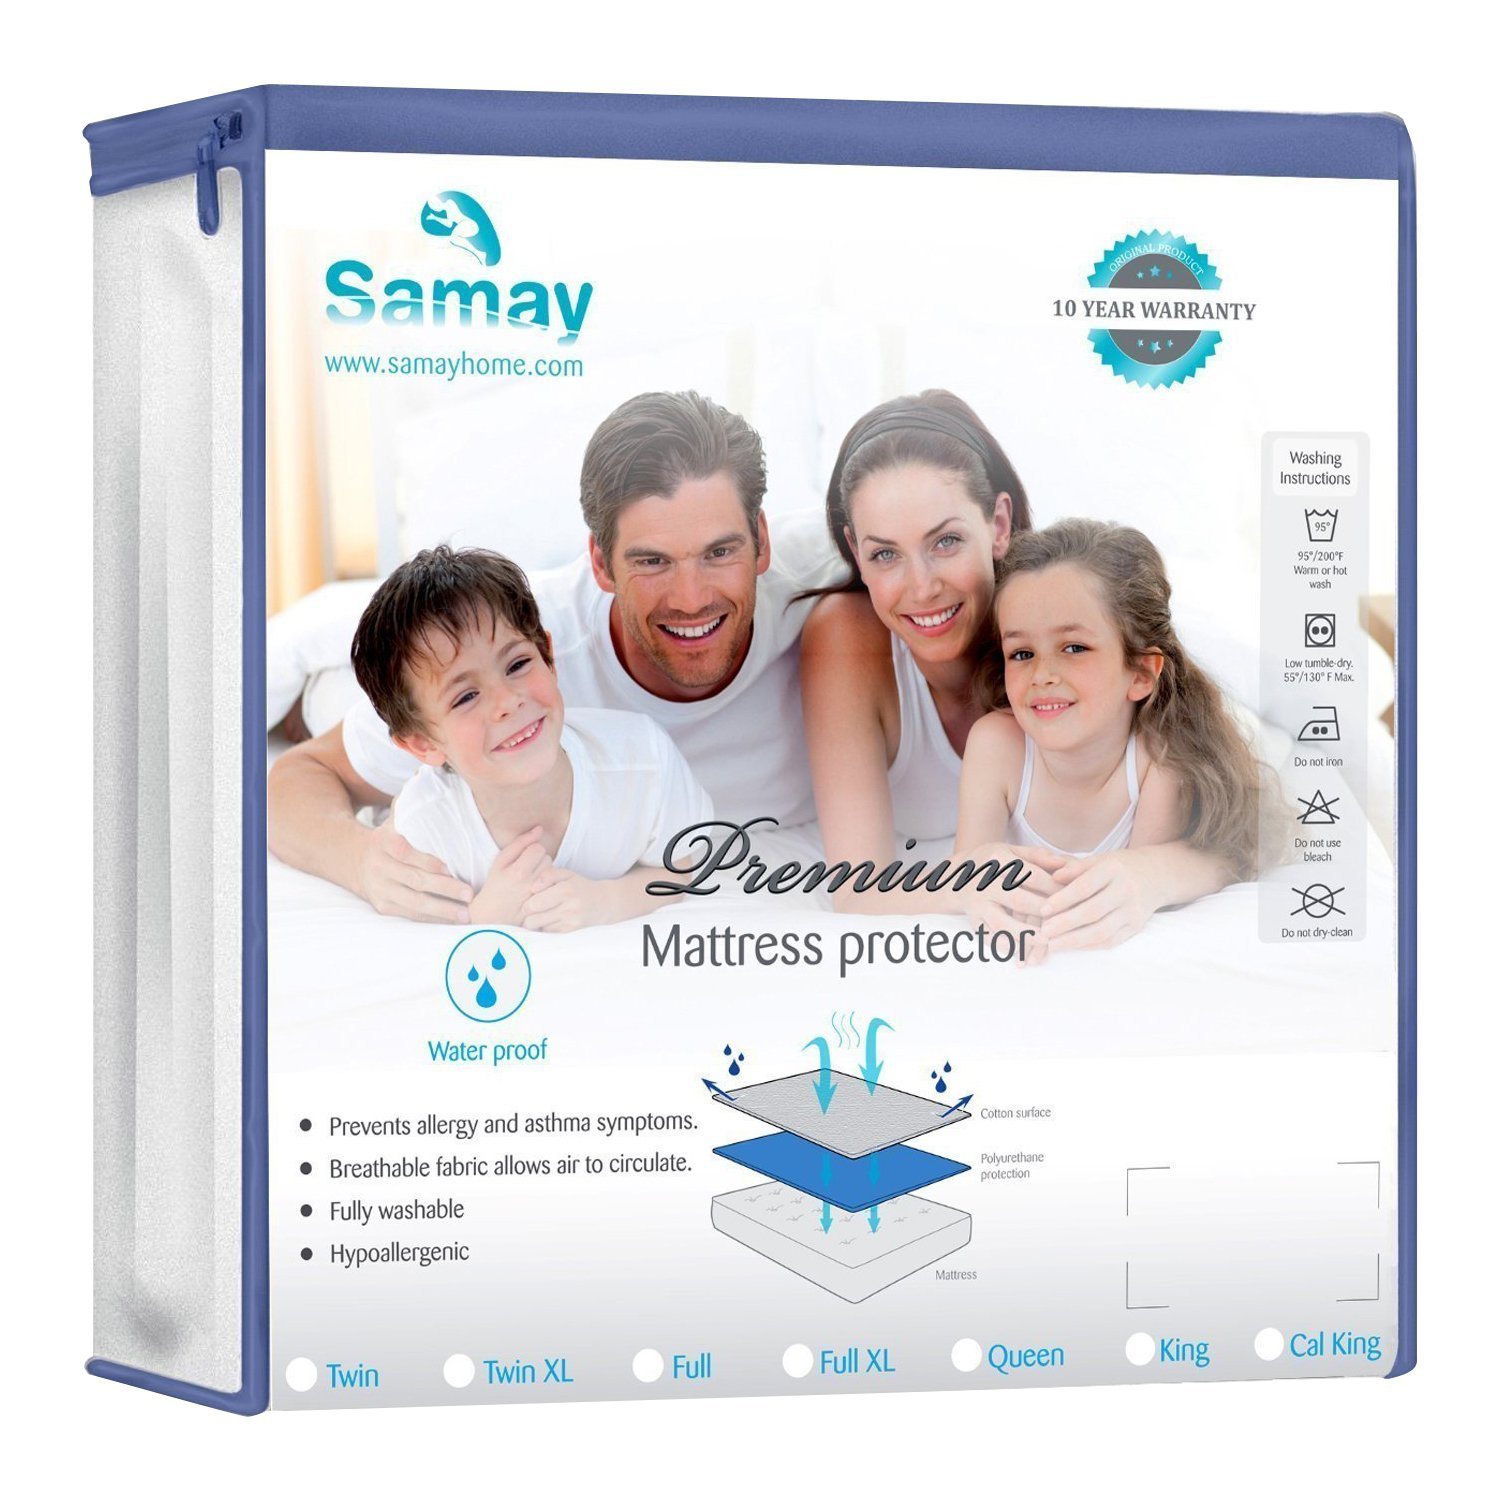 Waterproof Mattress Cover Full Size 55 x 76 x 16 Inches Premium Hypoallergenic Mattress... by SAMAY